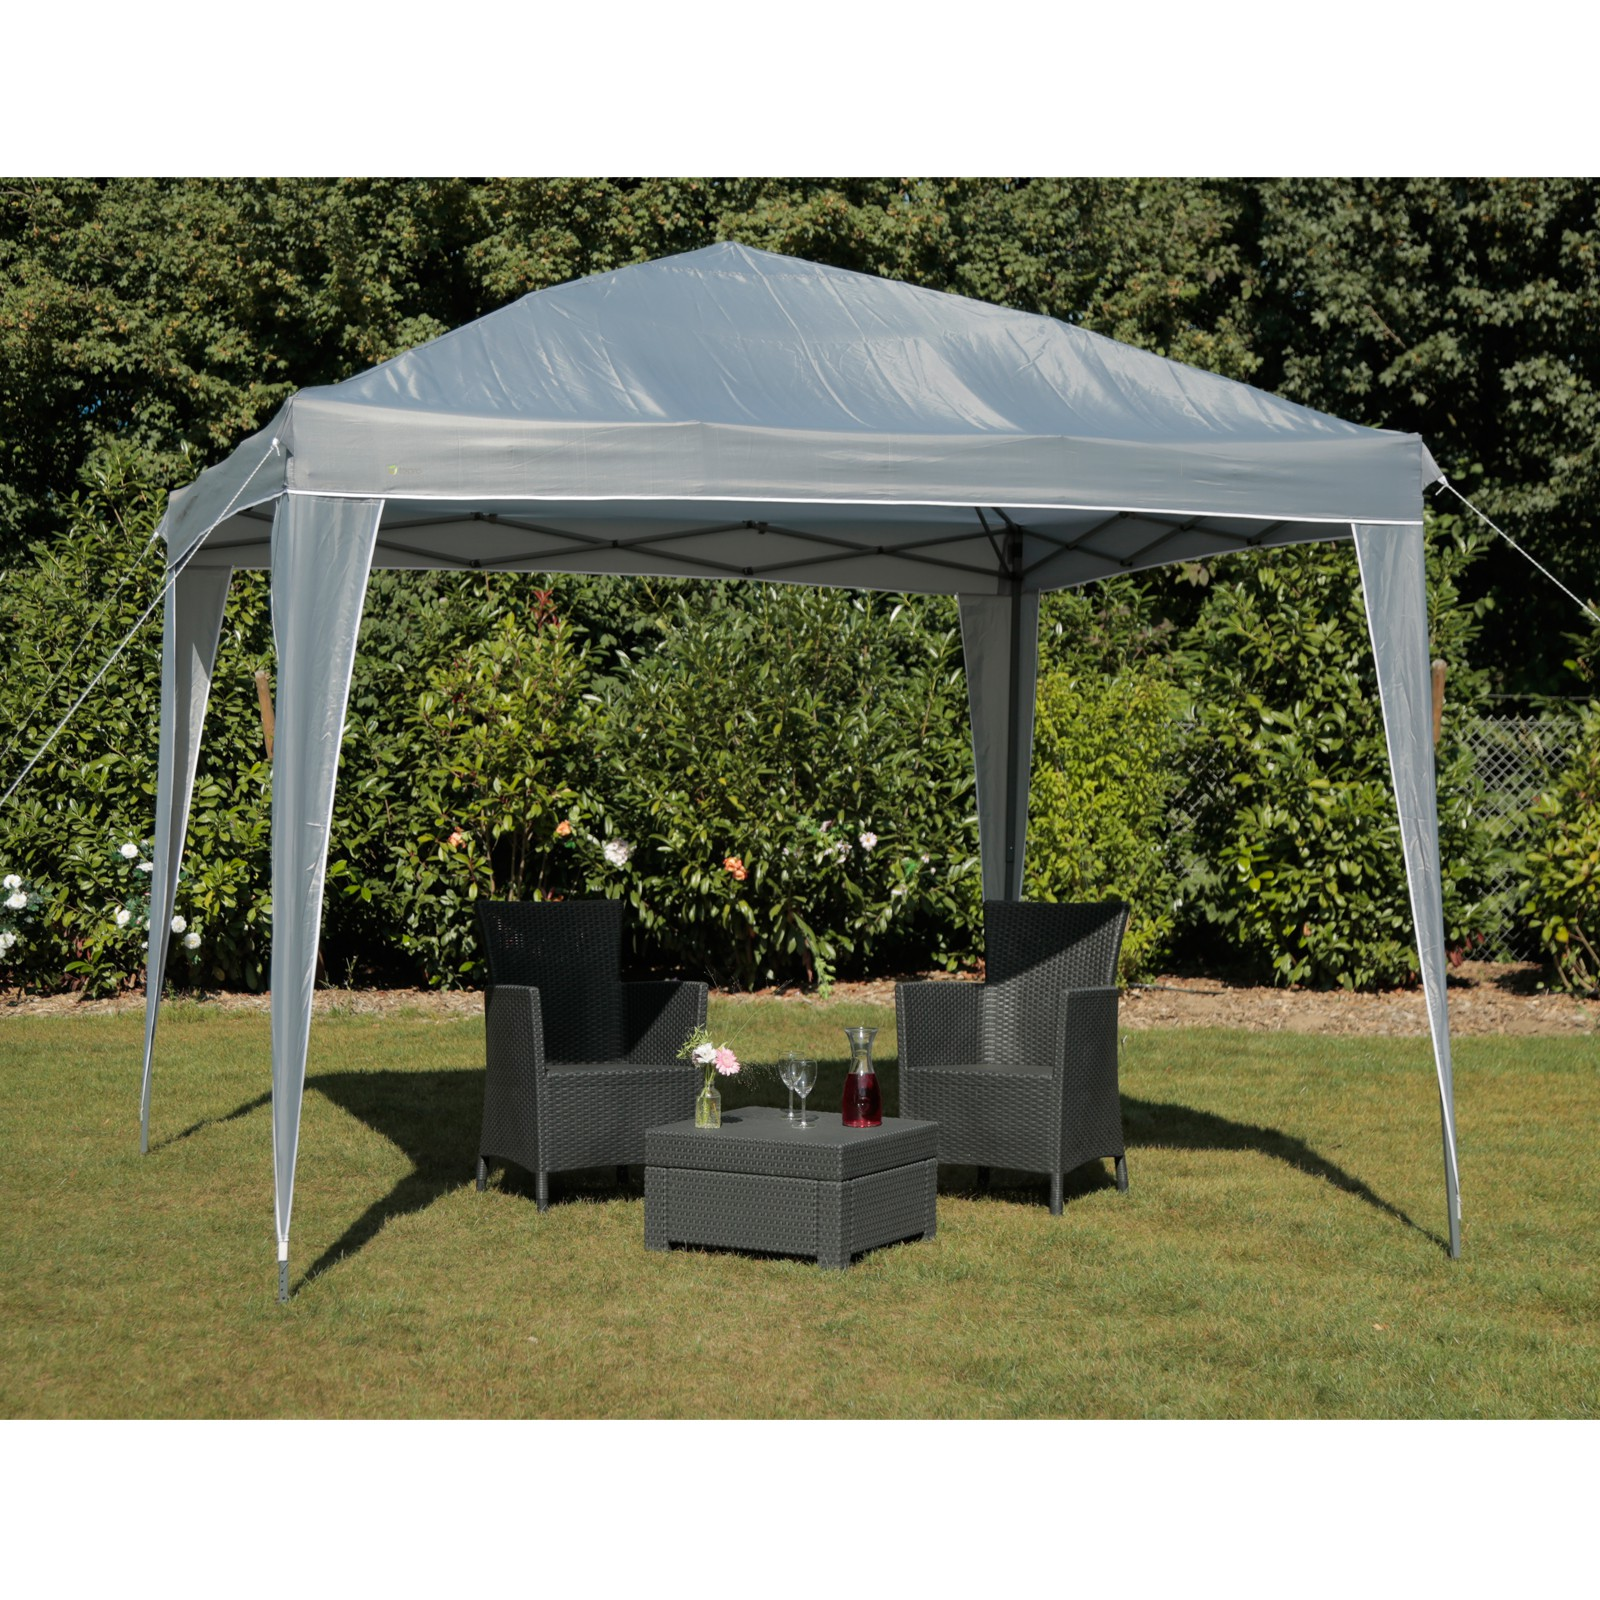 tepro faltpavillon pavillon 3x3 gartenpavillon belize grau partyzelt festzelt 4011964055025 ebay. Black Bedroom Furniture Sets. Home Design Ideas